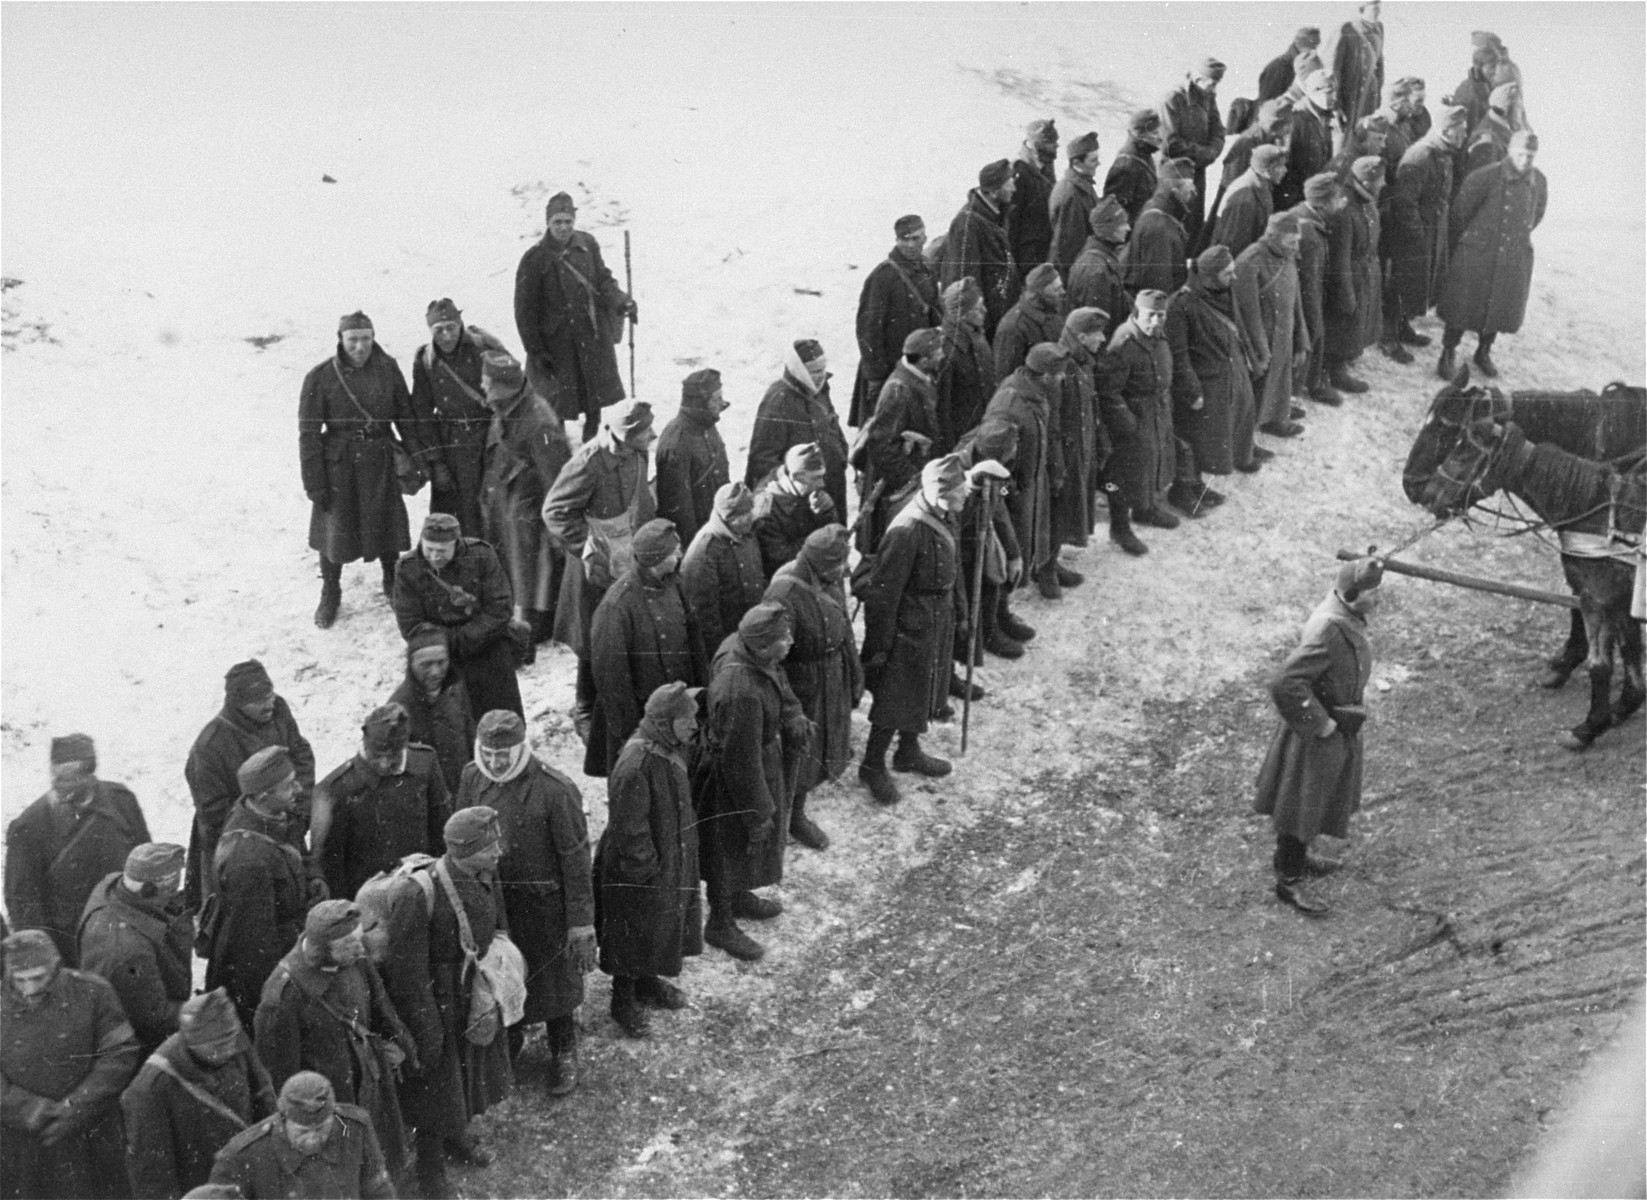 Hungarian-Jewish conscripts in the Hungarian Labor Service assembled for their journey back to Ungvar, Hungary.